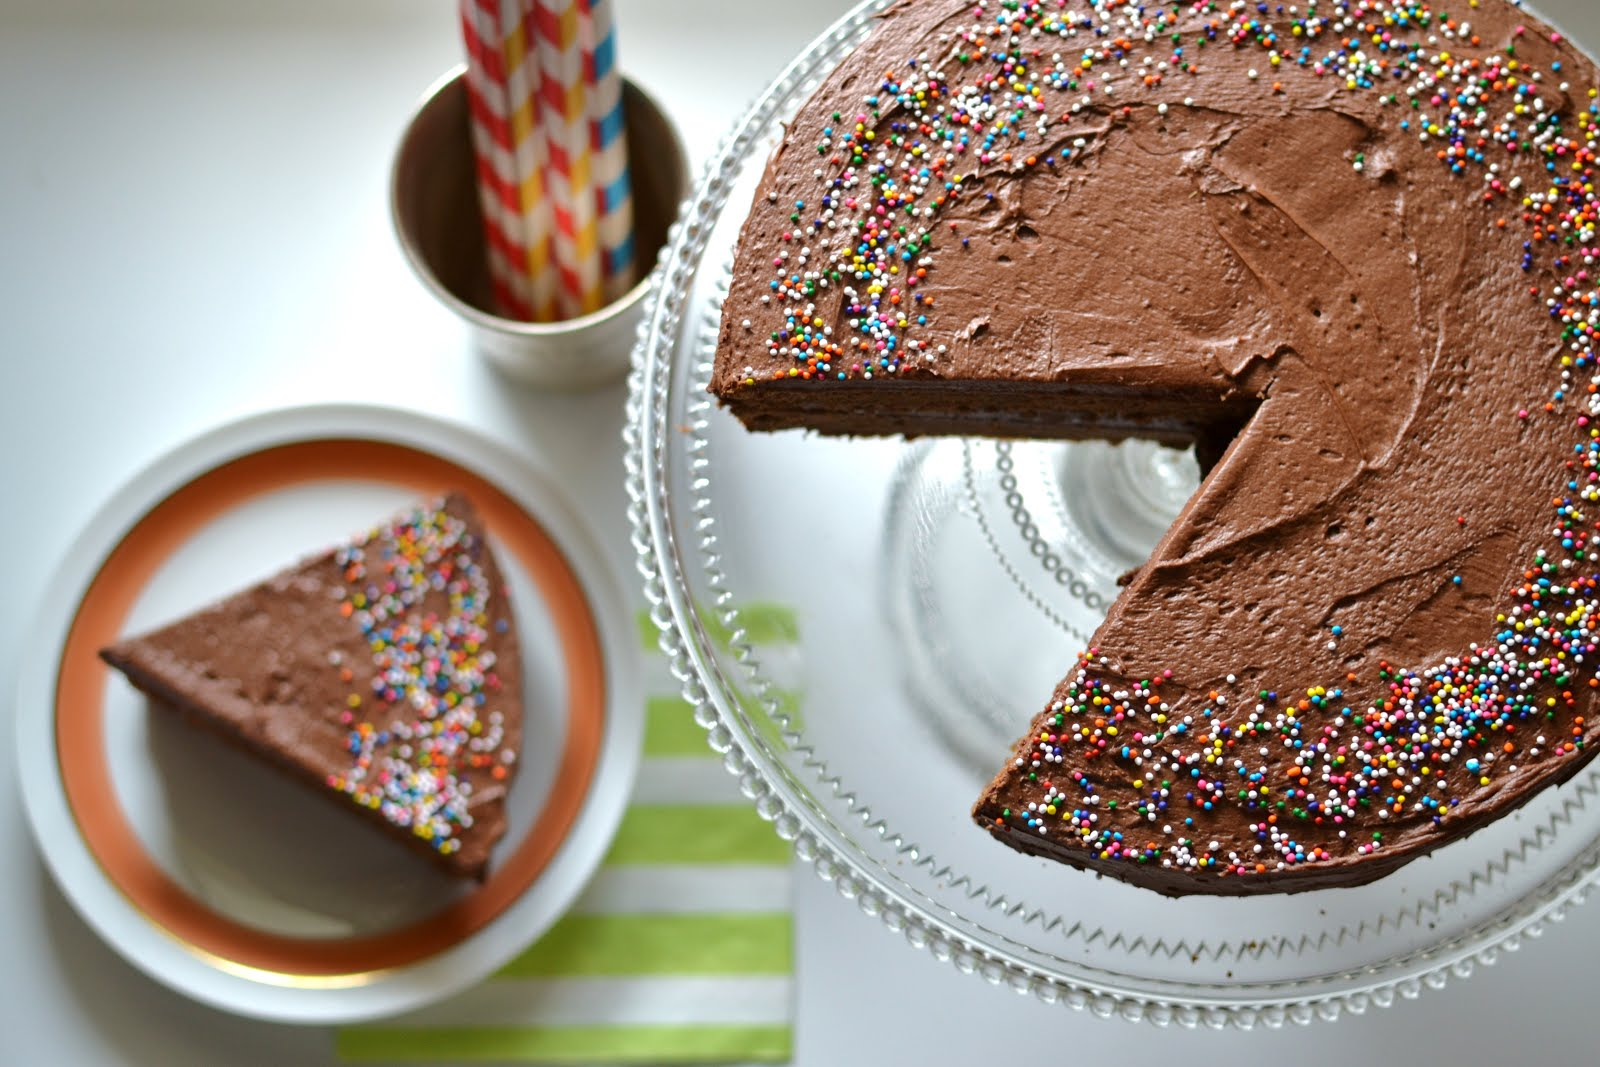 Living In Vogue: Mexican Hot Chocolate Cake